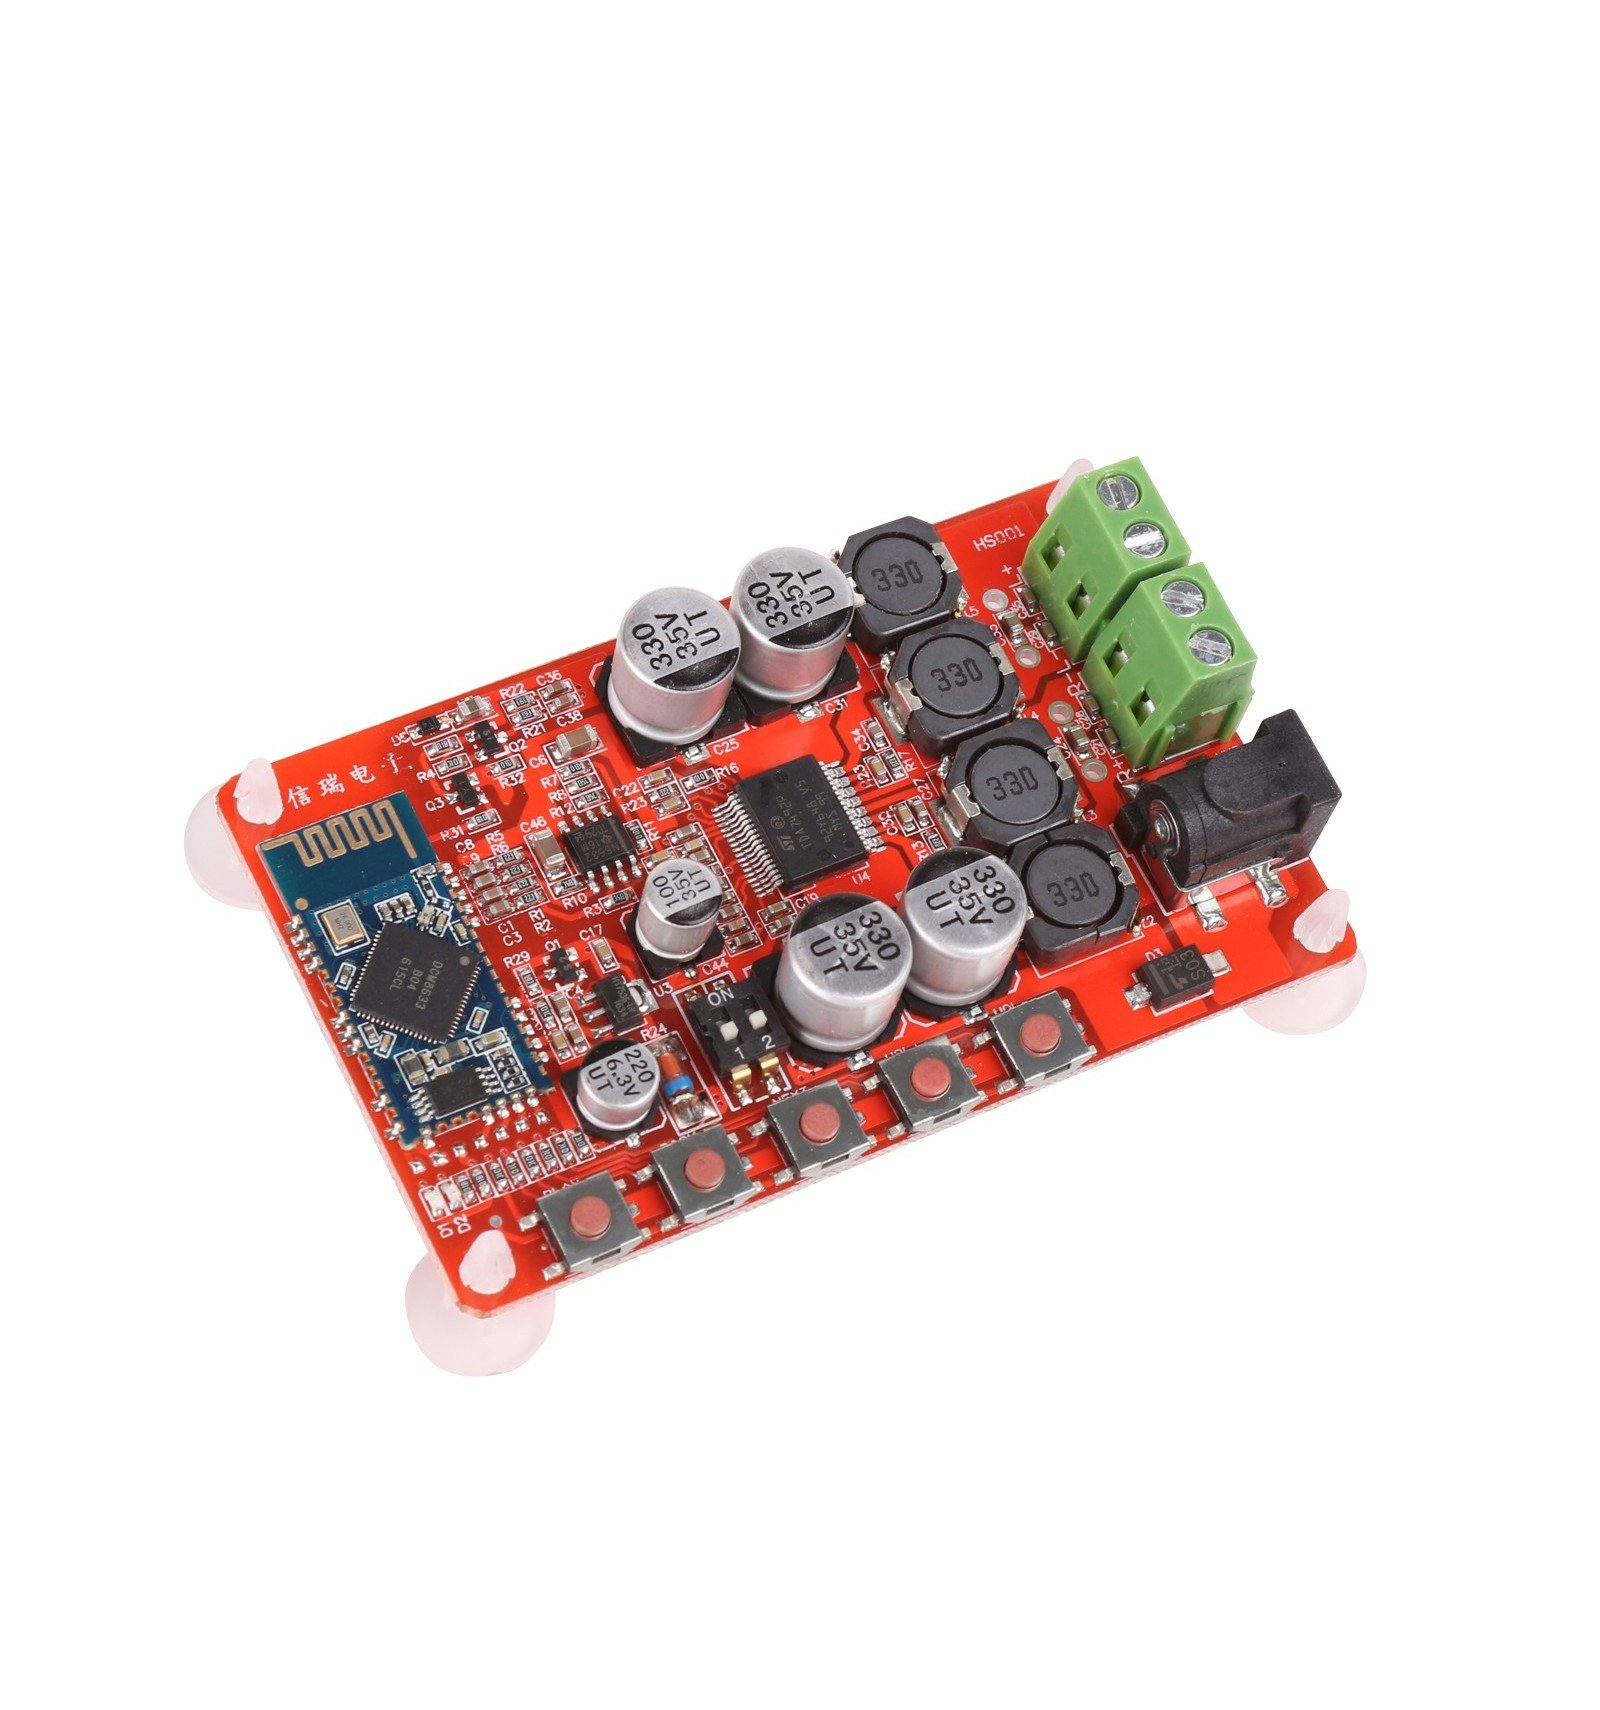 Wireless Bluetooth Audio Receiver Digital Amp Board 25w Hifi Amplifier With Mosfet Tda7492p Csr 40